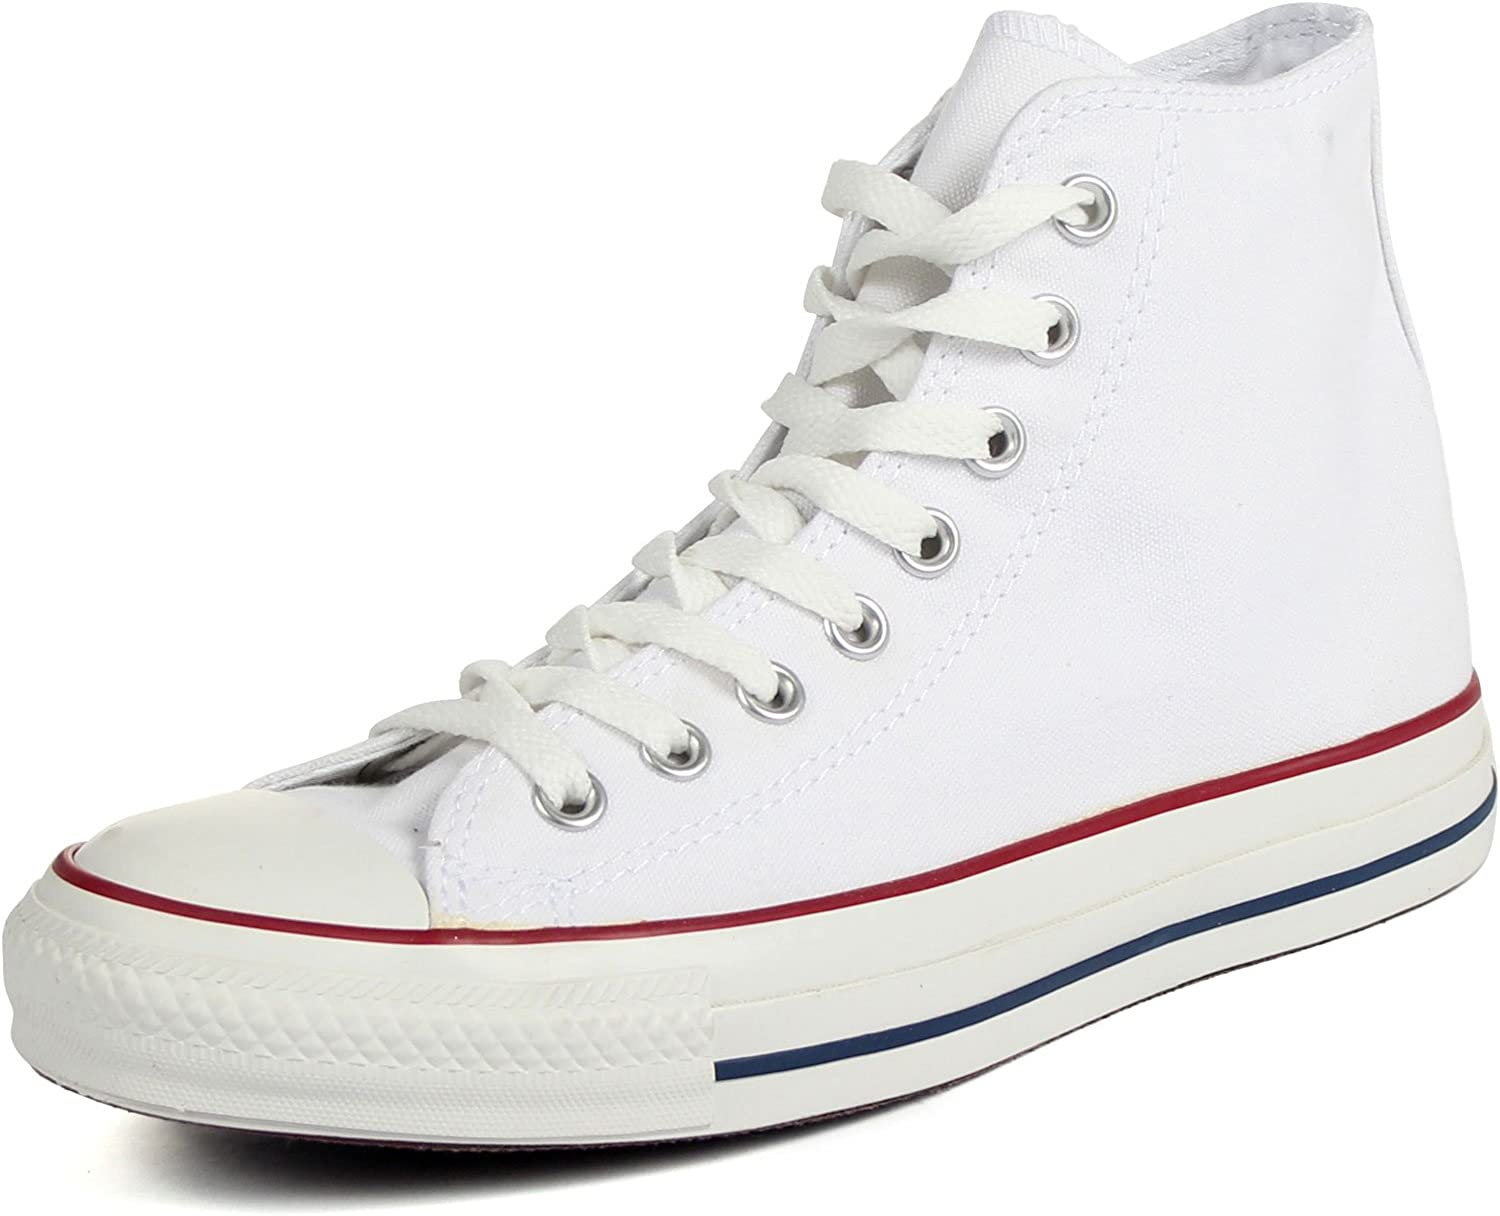 Luxury goods Converse Max 89% OFF mens Oxfords